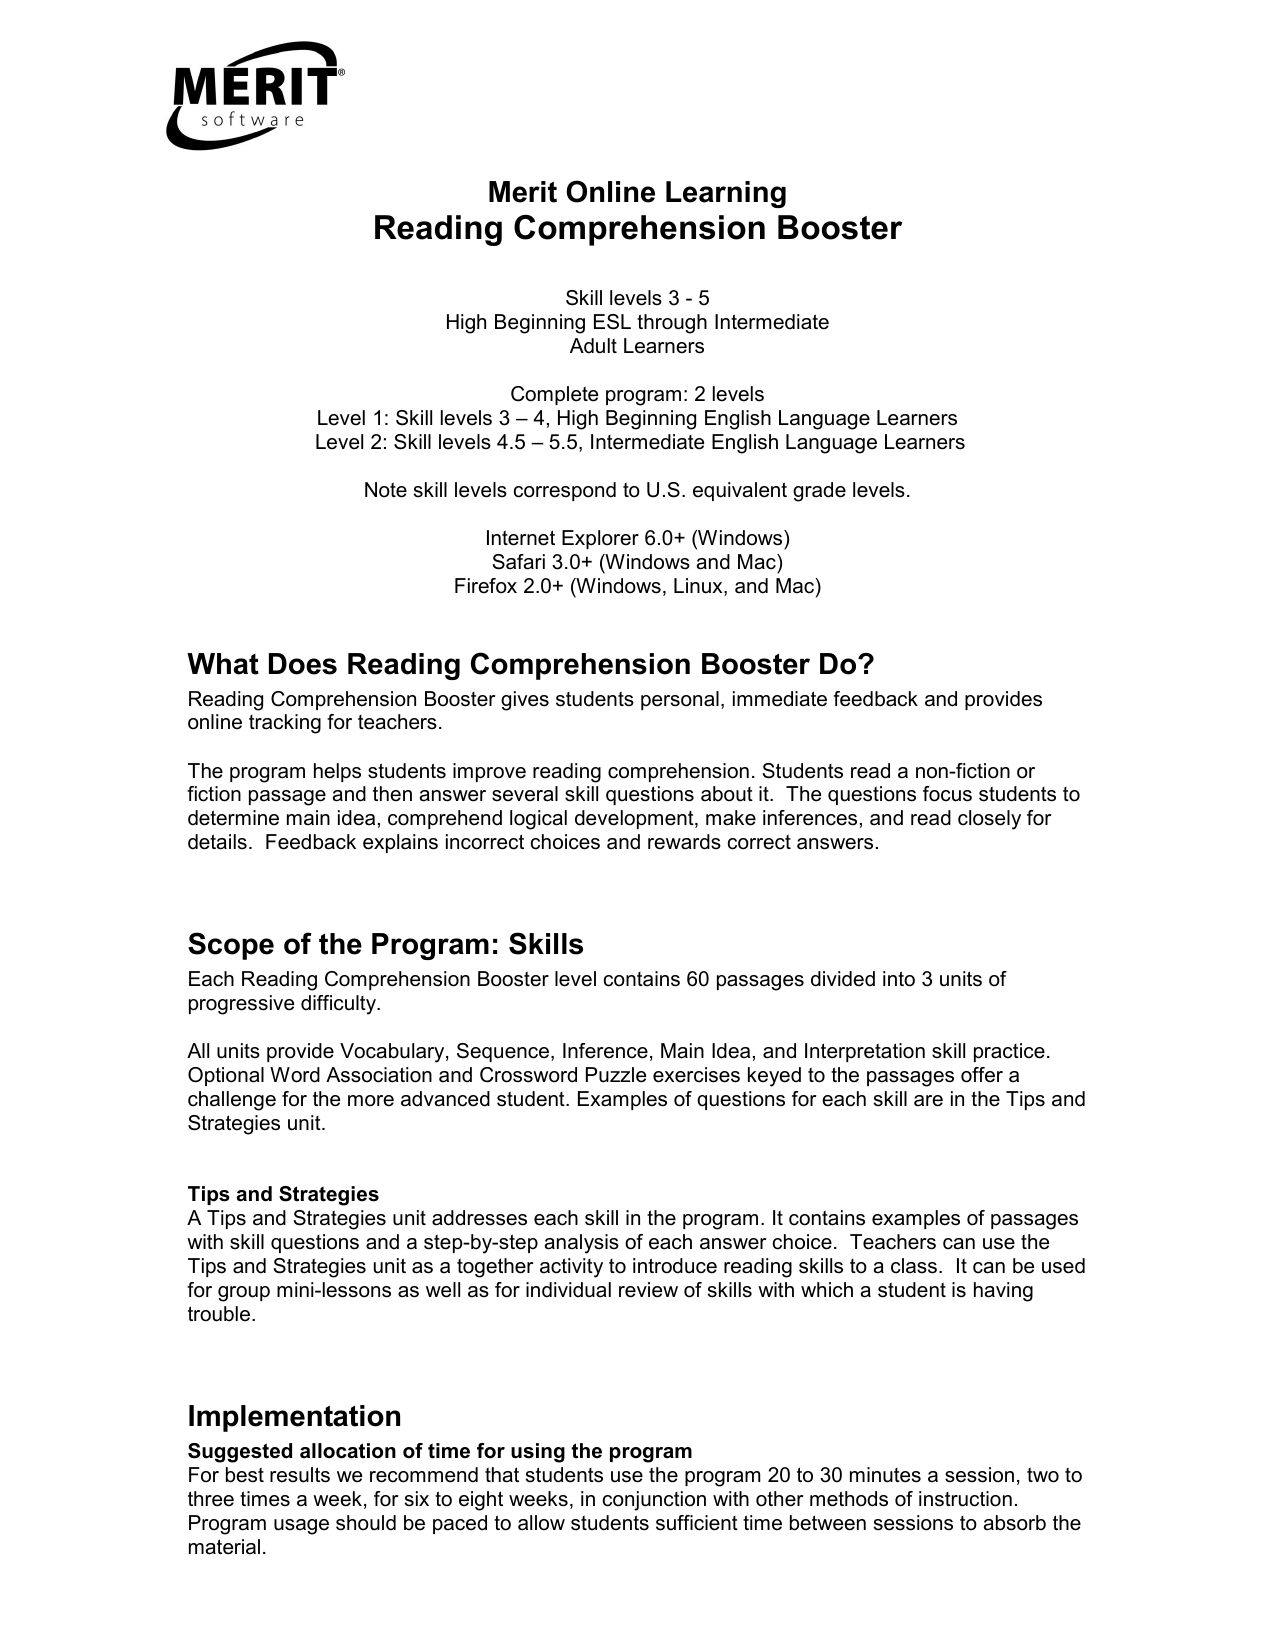 Reading Comprehension Booster